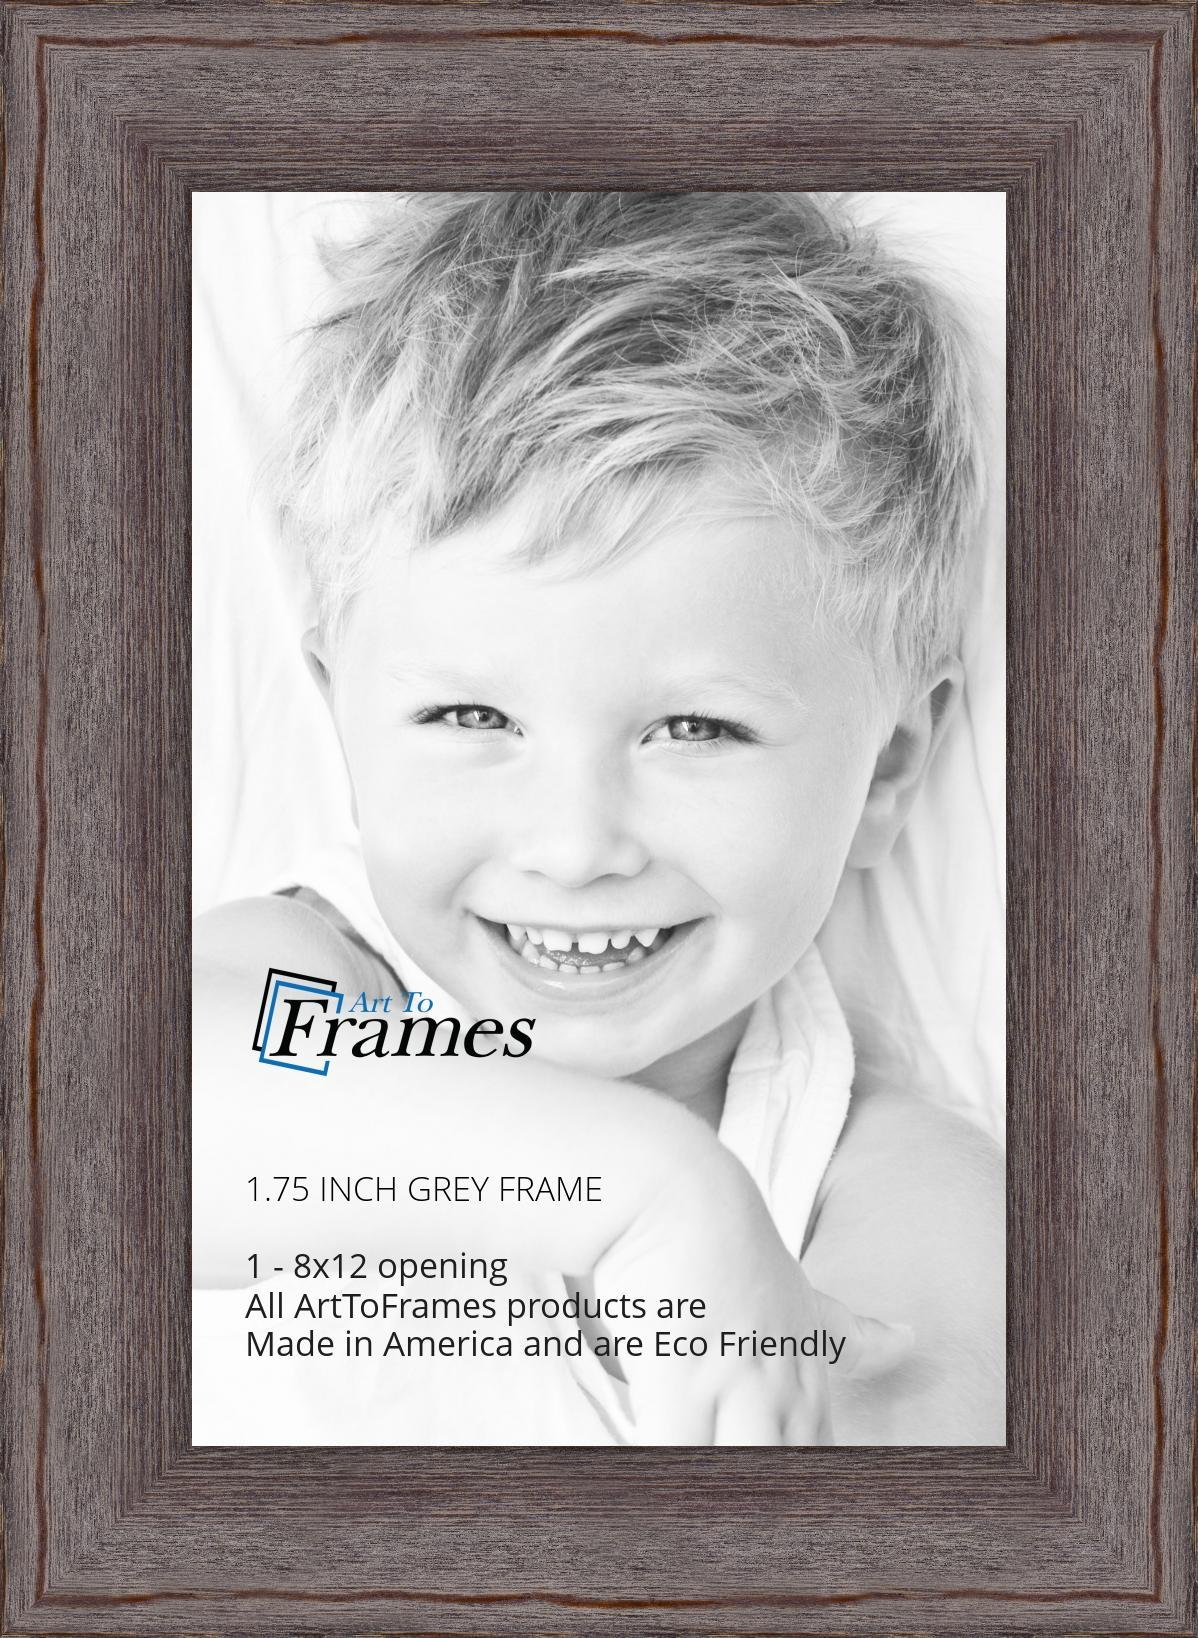 ArtToFrames 8x12 inch Grey - Distressed Wood Wood Picture Frame, WOM82223-101-8x12 by ArtToFrames (Image #2)